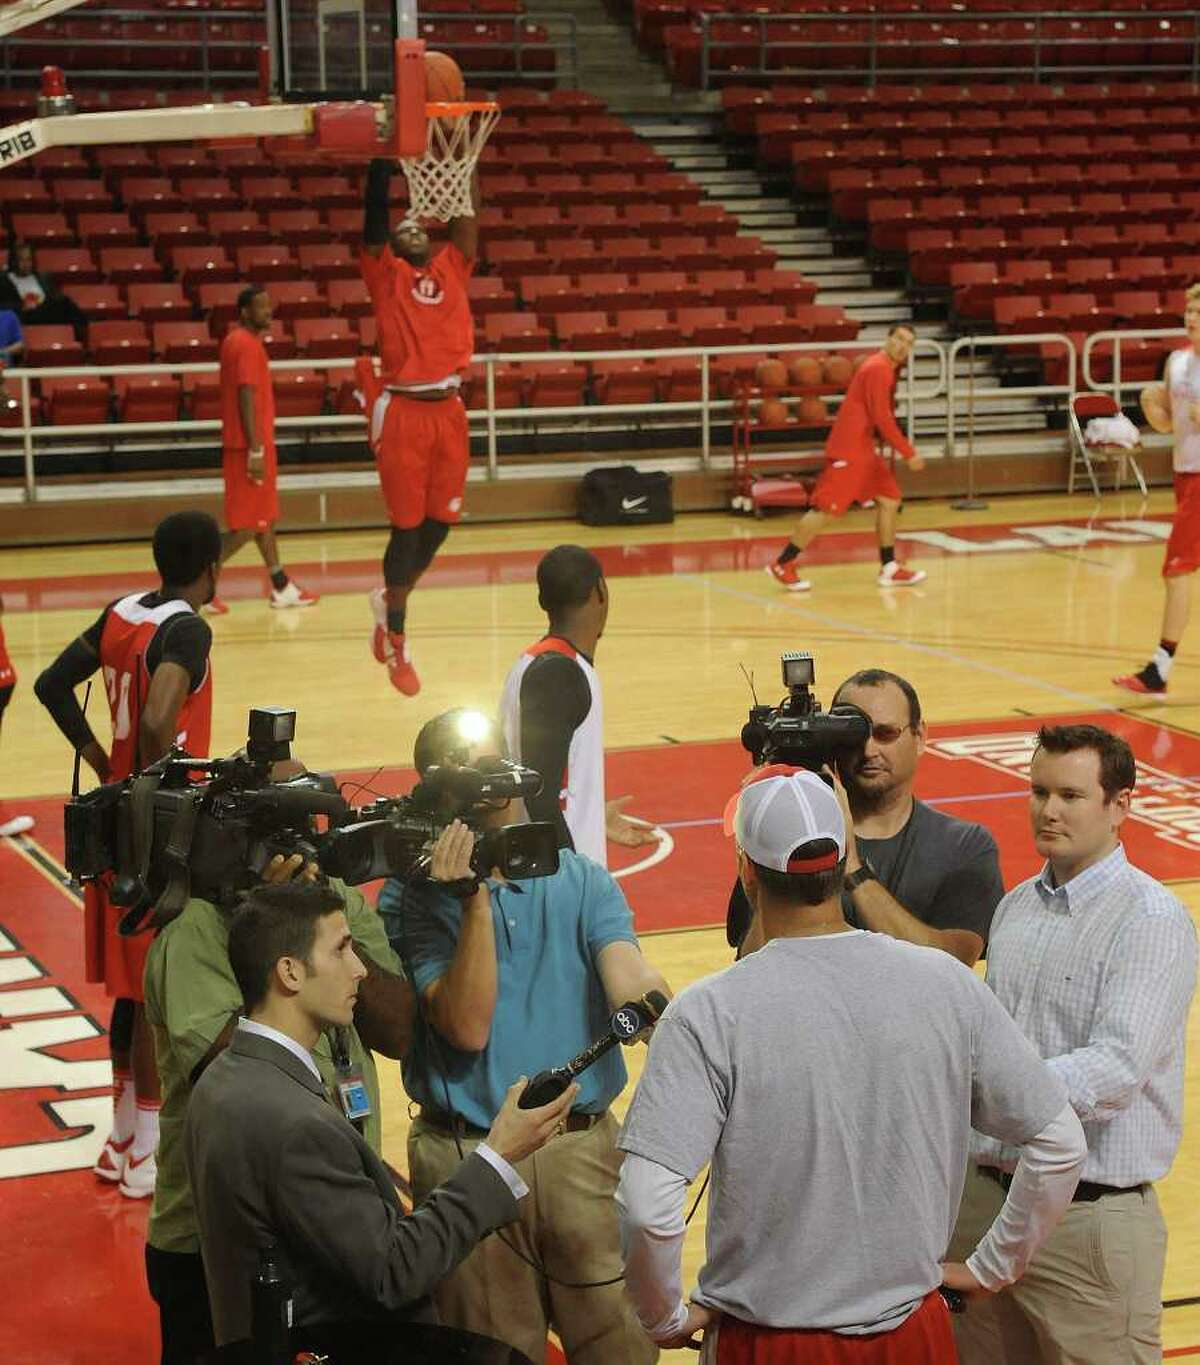 First year Head Coach Pat Knight, center with hands on his hips, talks to the media Monday afternoon while his team warms up for practice. After practice, the Lamar University Cardinal basketball team was leaving the Montagne Center and heading to the Jack Brooks Regional Airport in Nederland to fly to Dayton Ohio for their first NCAA tournament game against Vermont. Dave Ryan/The Enterprise